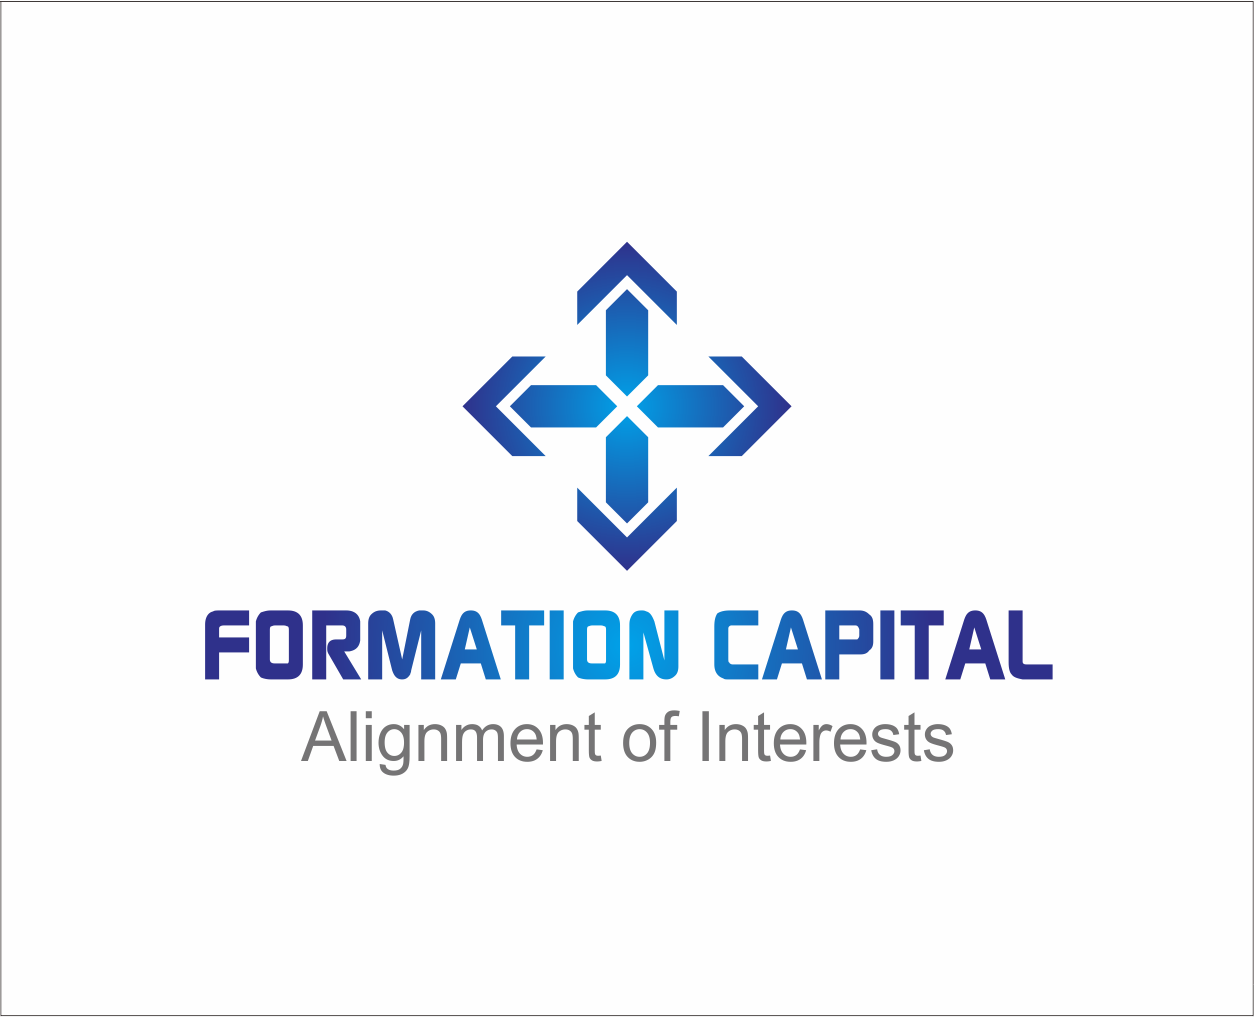 Logo Design by Armada Jamaluddin - Entry No. 198 in the Logo Design Contest Inspiring Logo Design for Formation Capital.